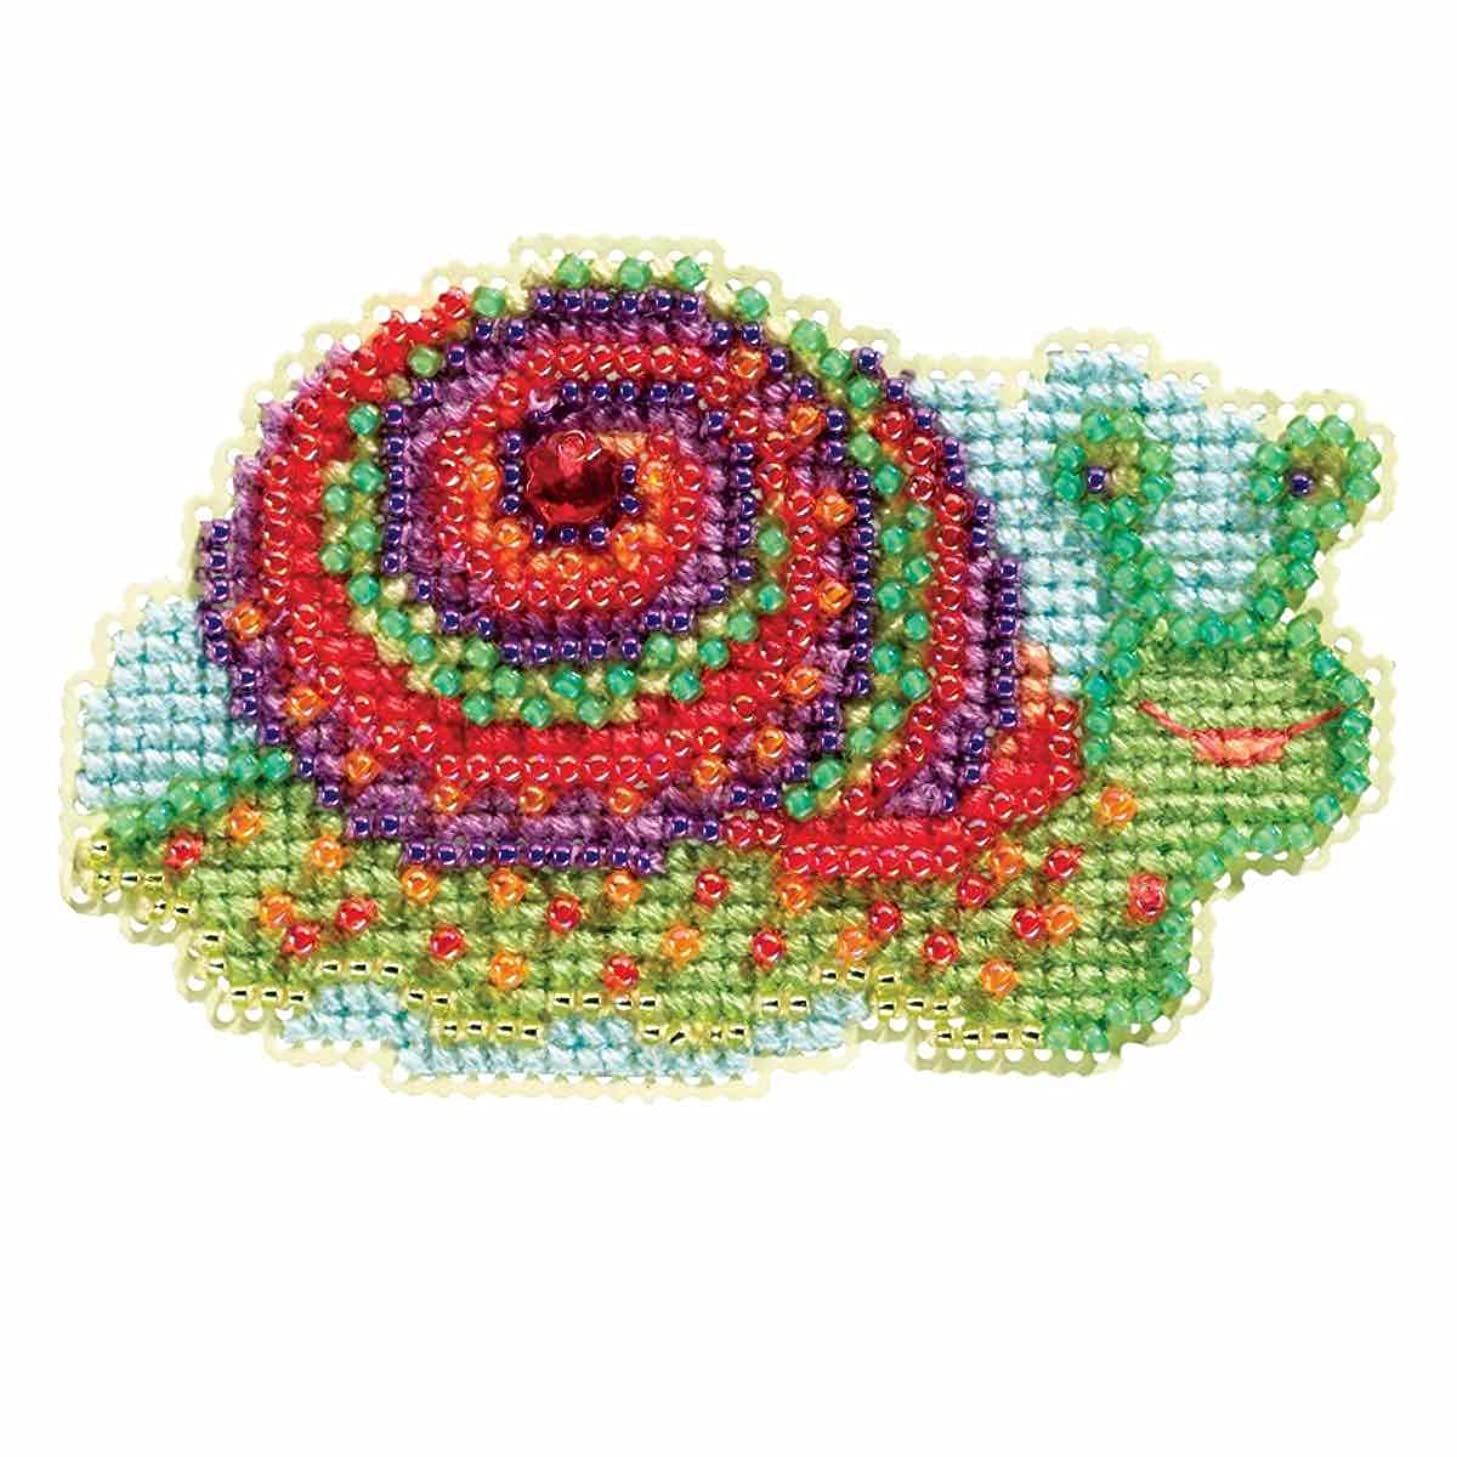 Snail Beaded Counted Cross Stitch Ornament Kit Mill Hill 2017 Spring Bouquet MH181714